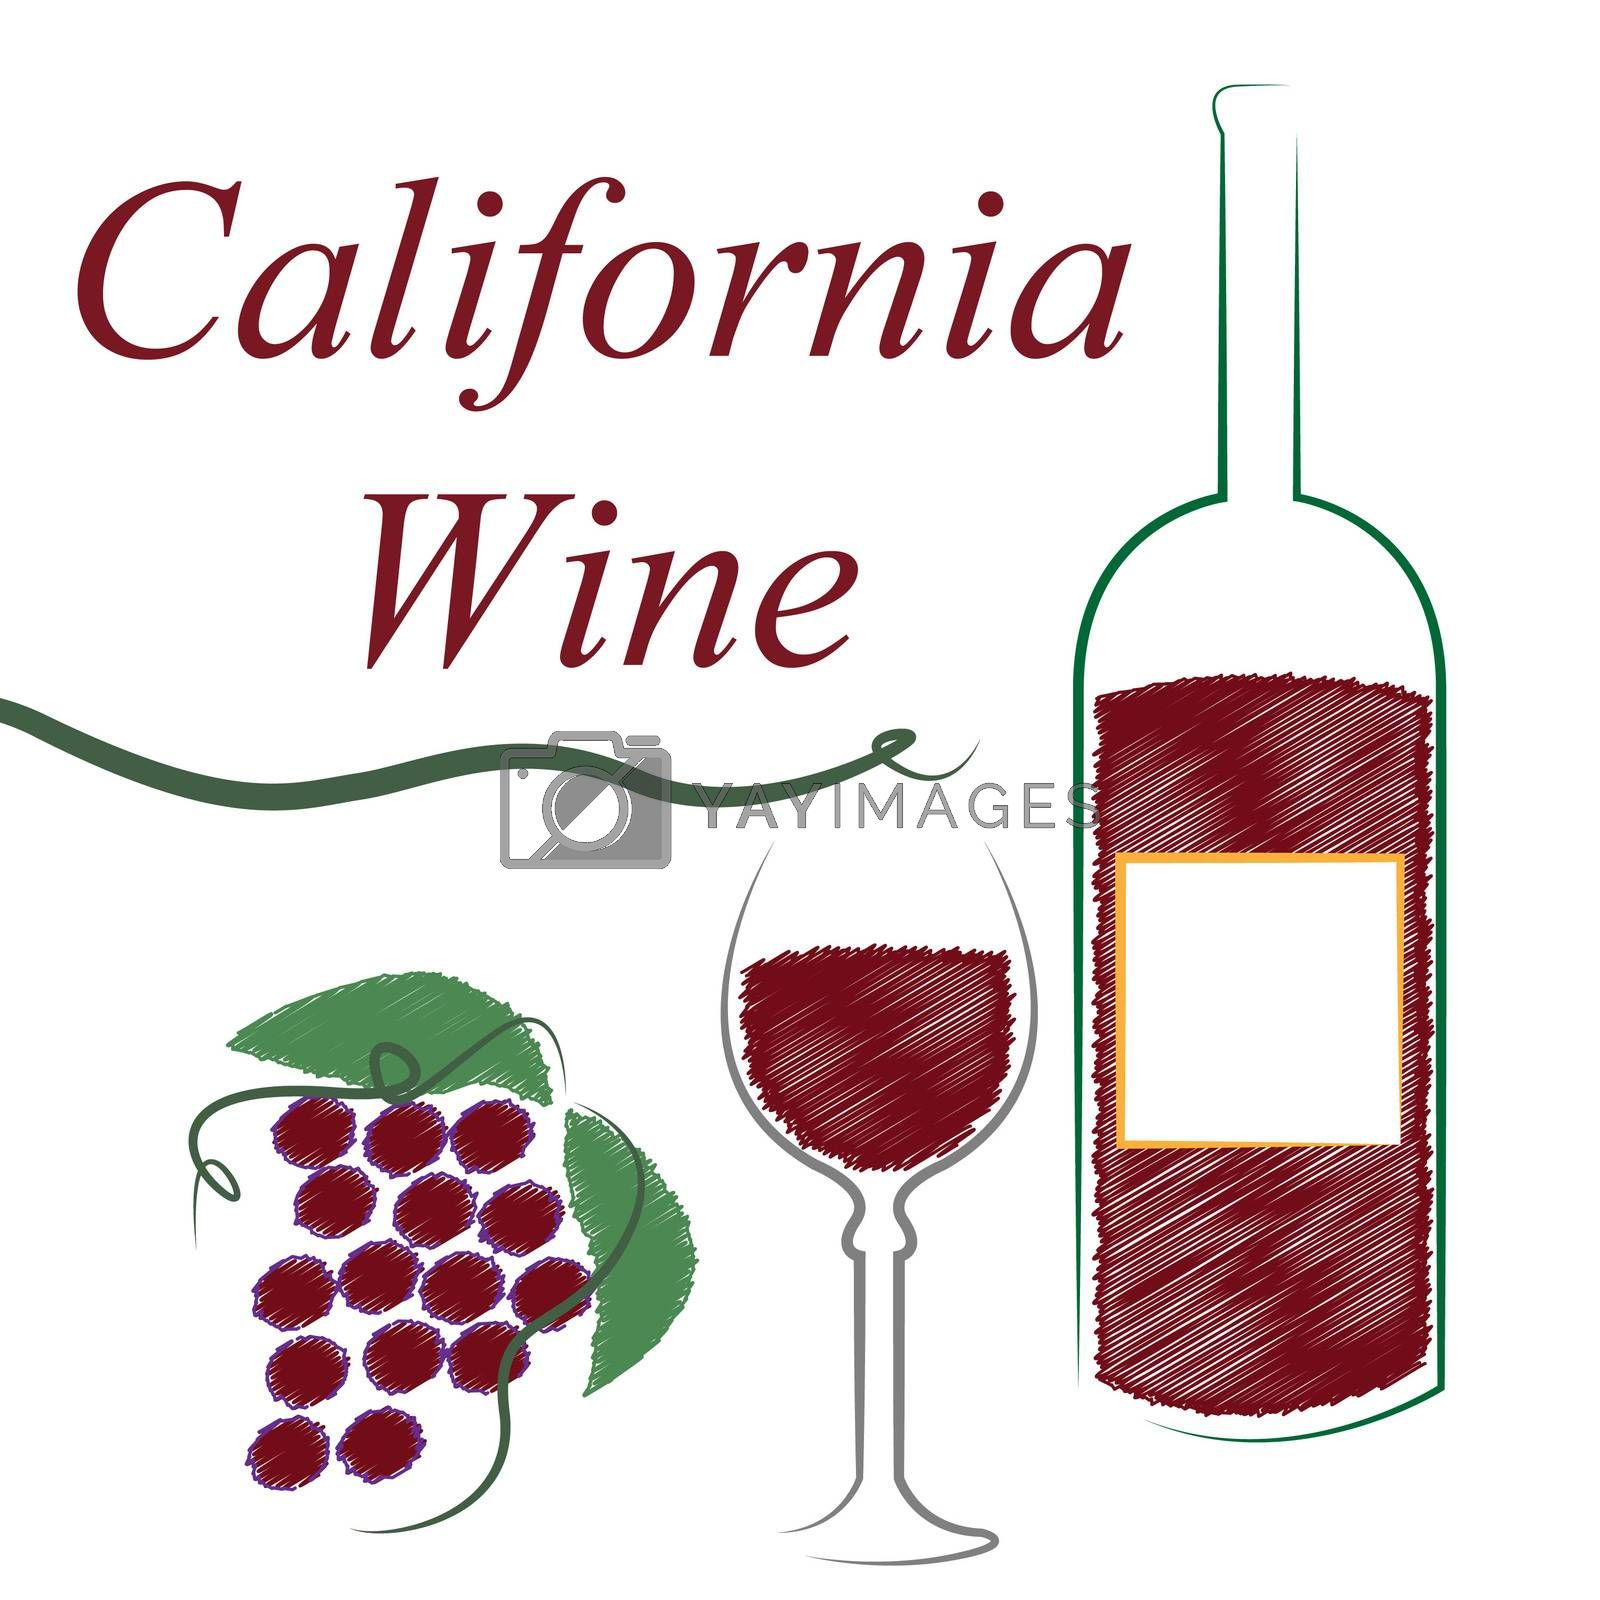 California Wine Means The United States And Booze by stuartmiles